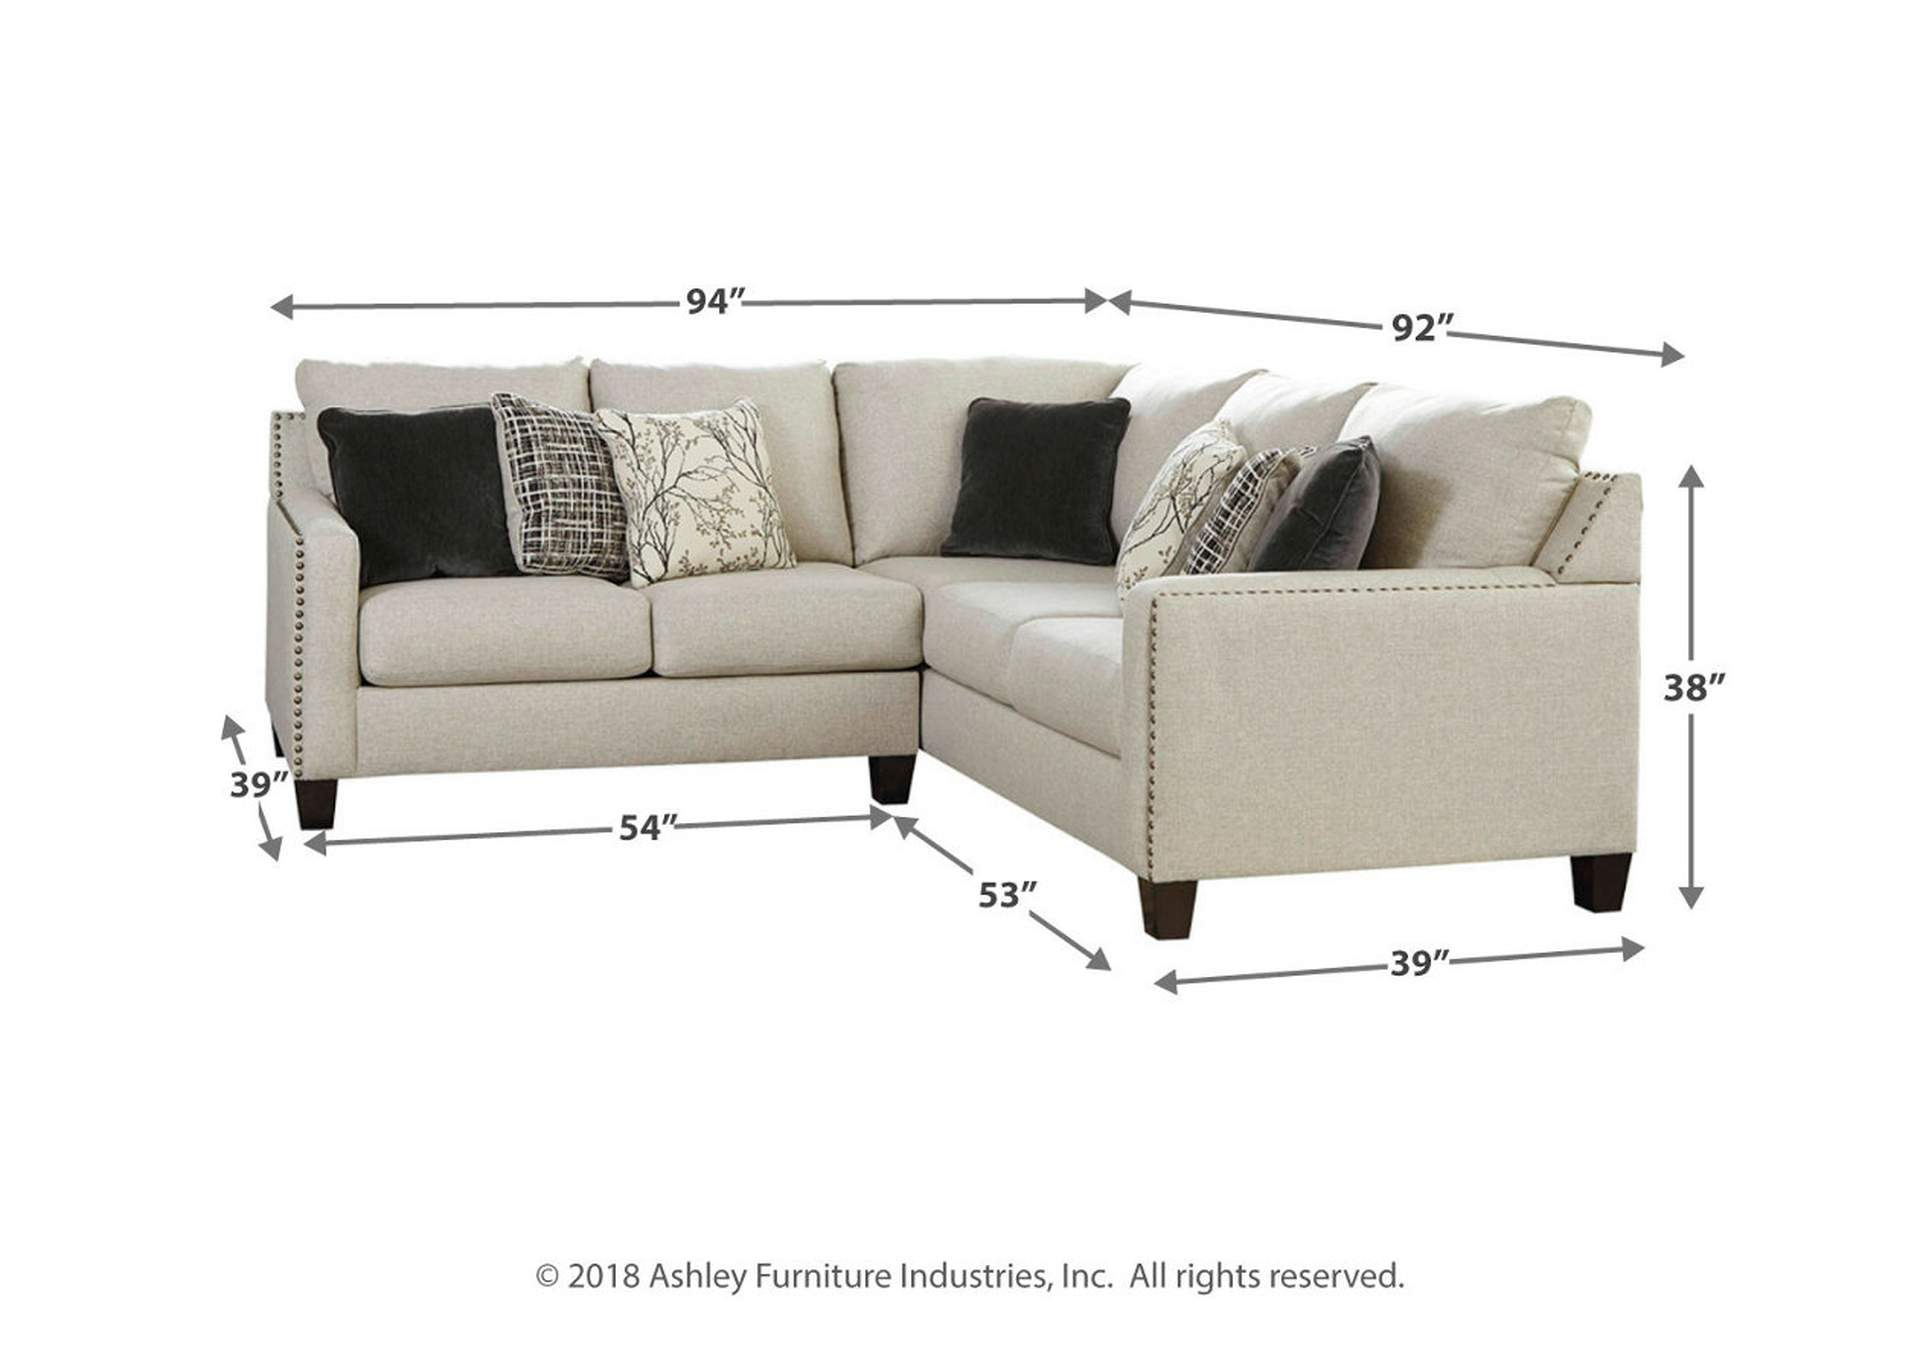 Hallenberg Fog LAF Chaise Sectional,Signature Design By Ashley